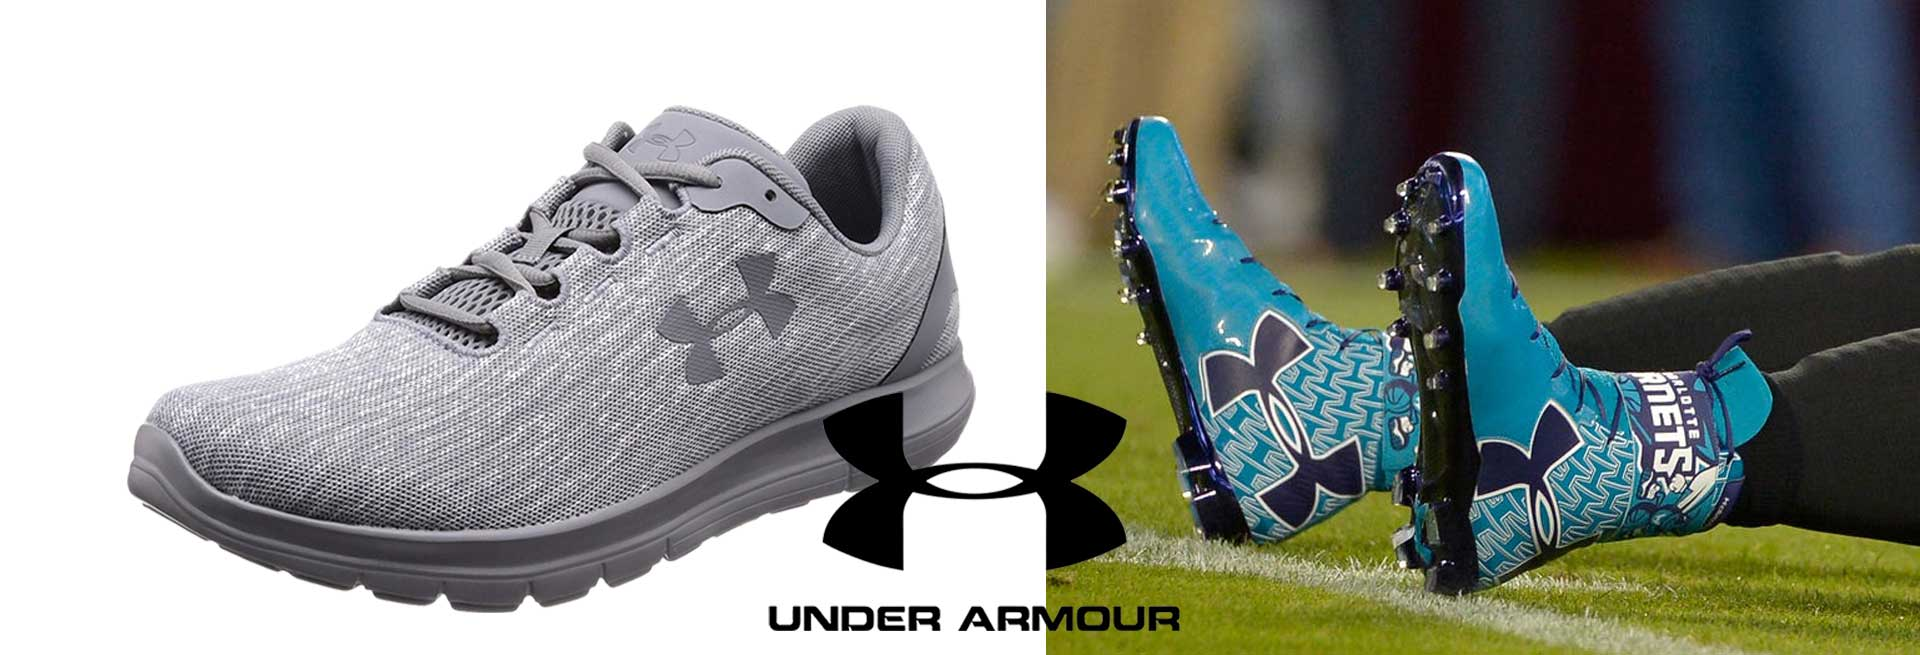 under armour 098 - آندر آرمور Under Armor